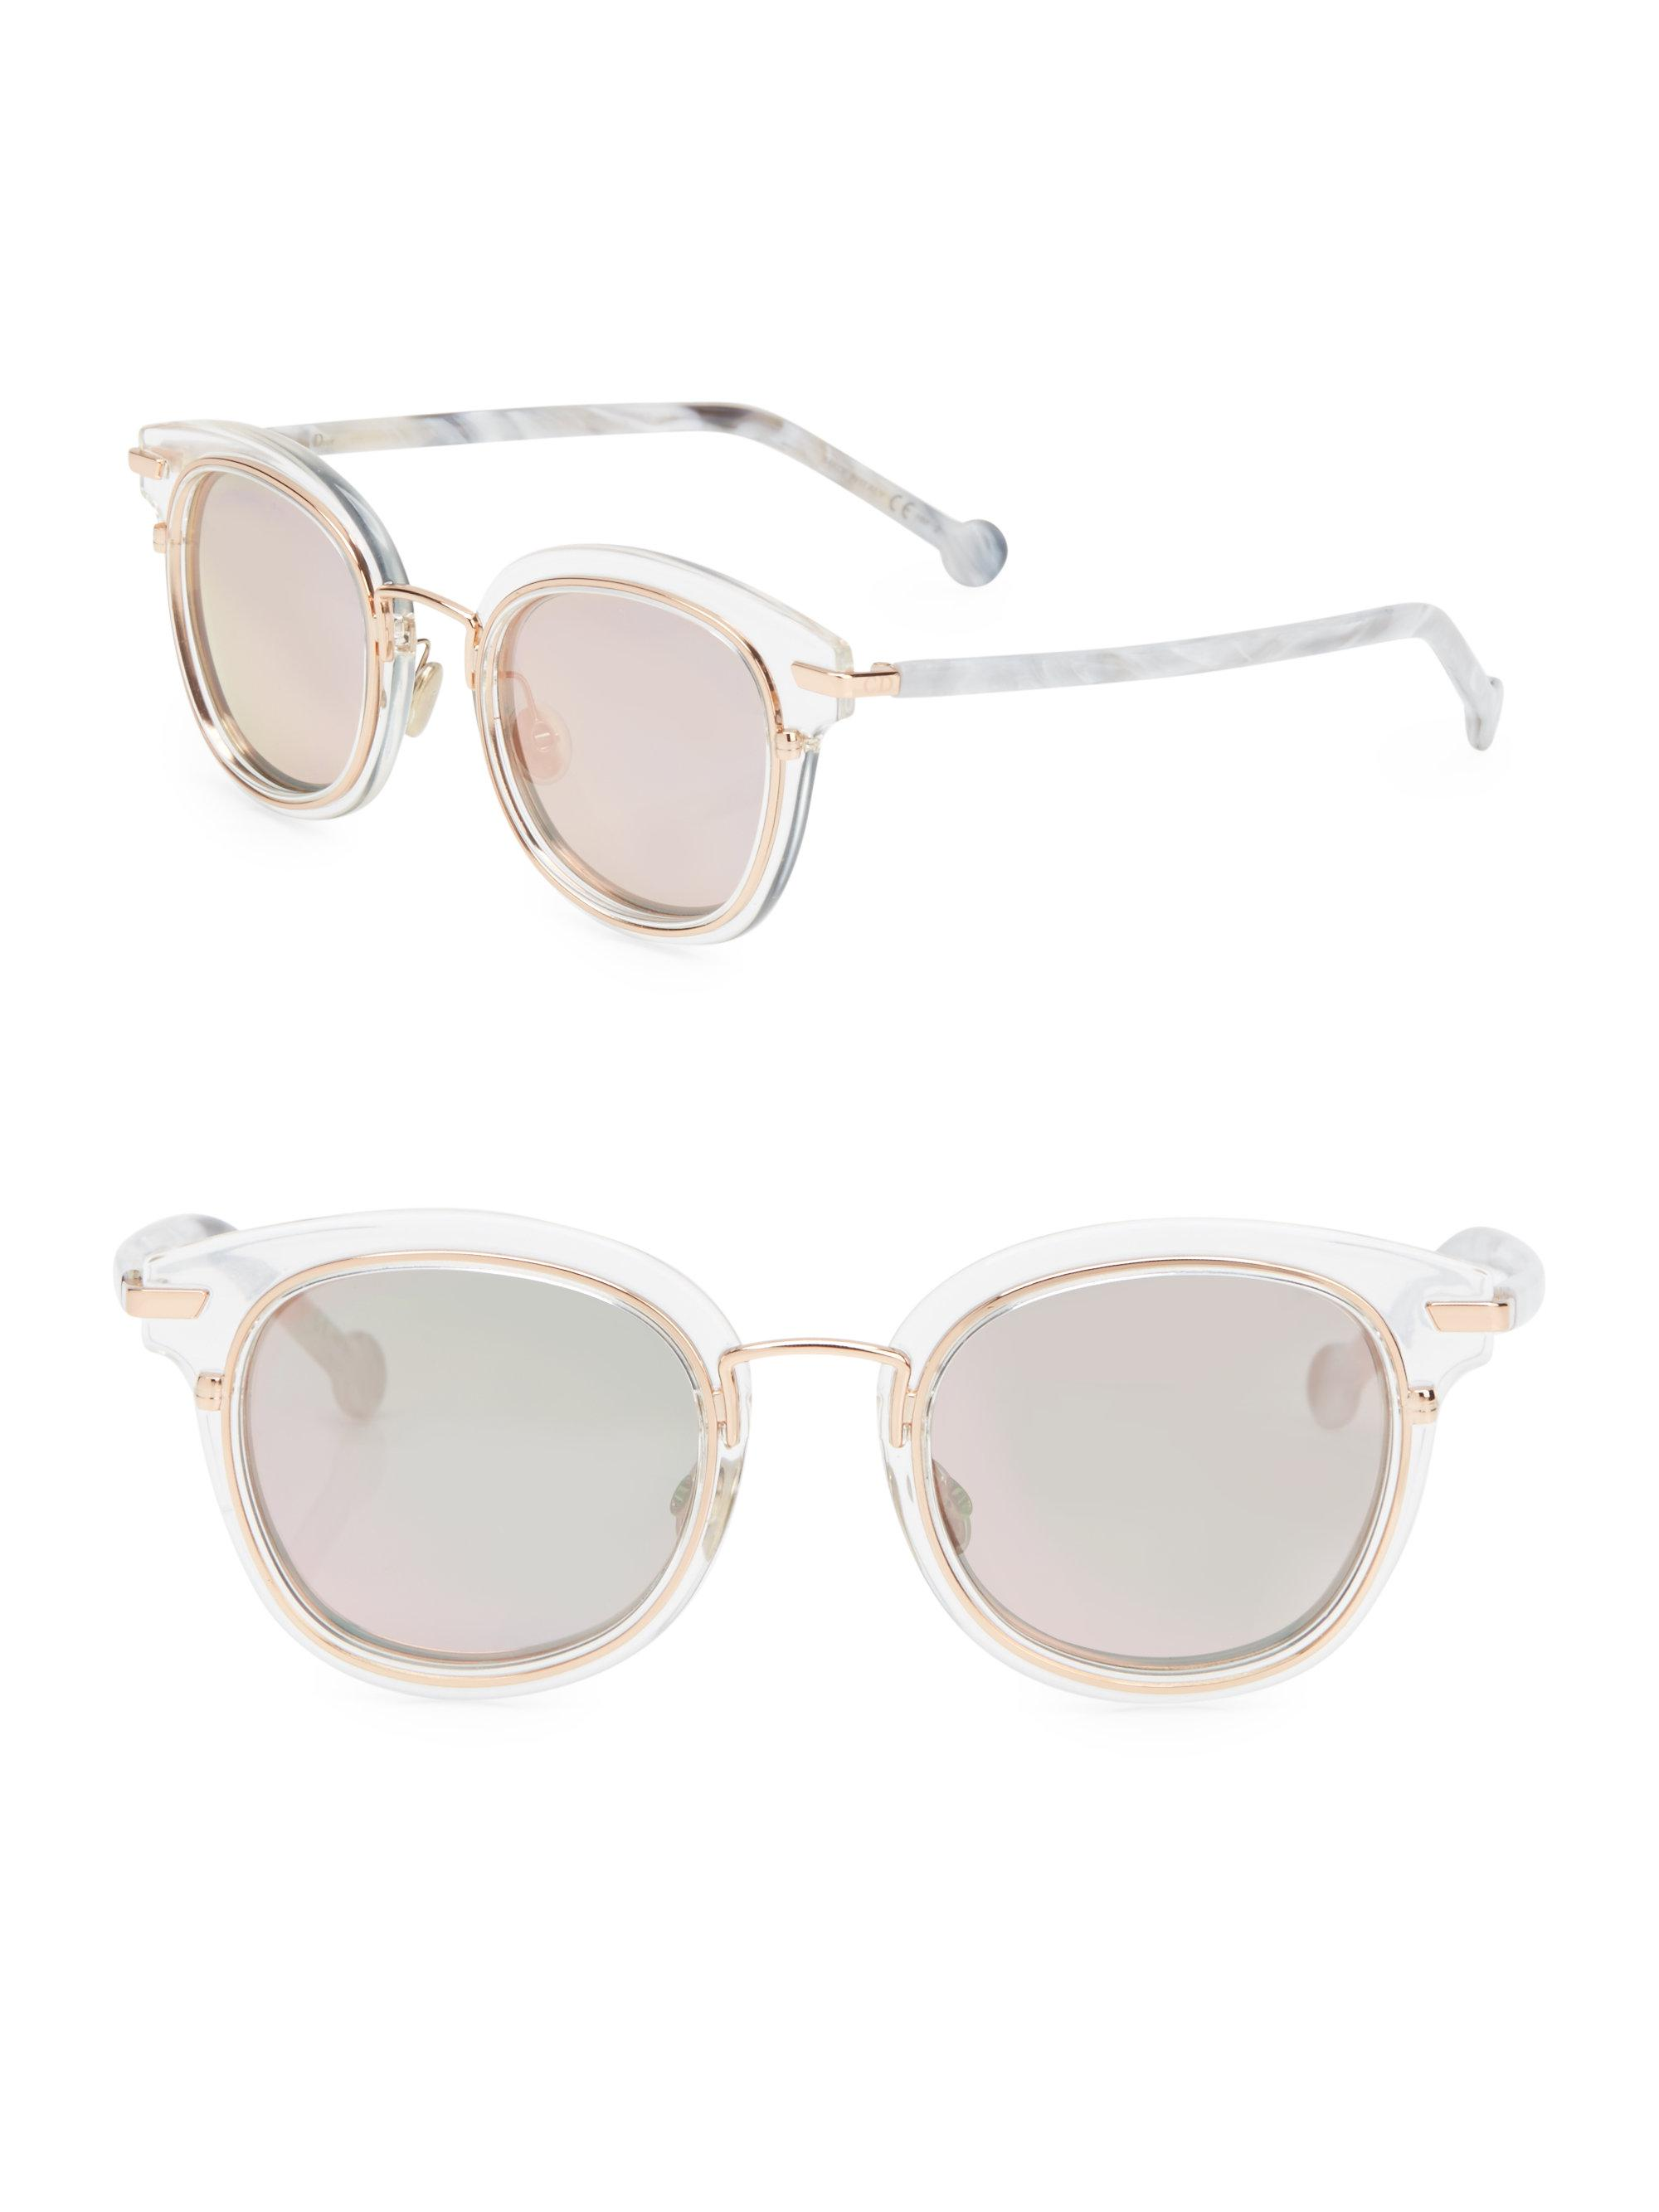 ac9dc516c0e Dior Women s Origins 2 48mm Square Sunglasses - Crystal in White - Lyst